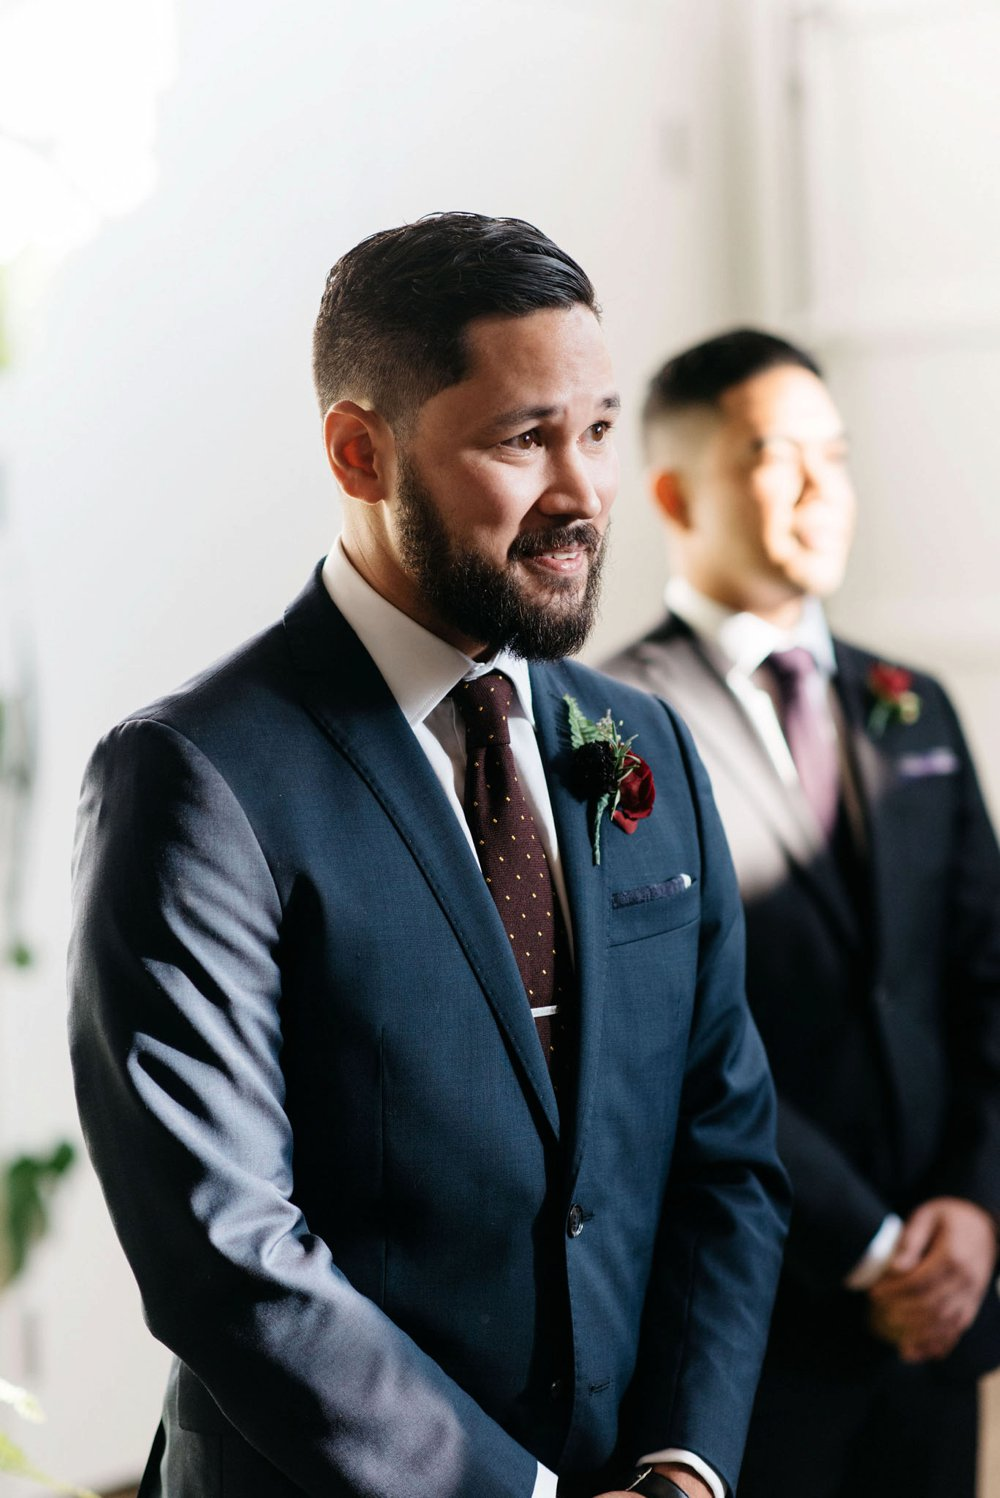 groom's reaction photos | Olive Photography Toronto